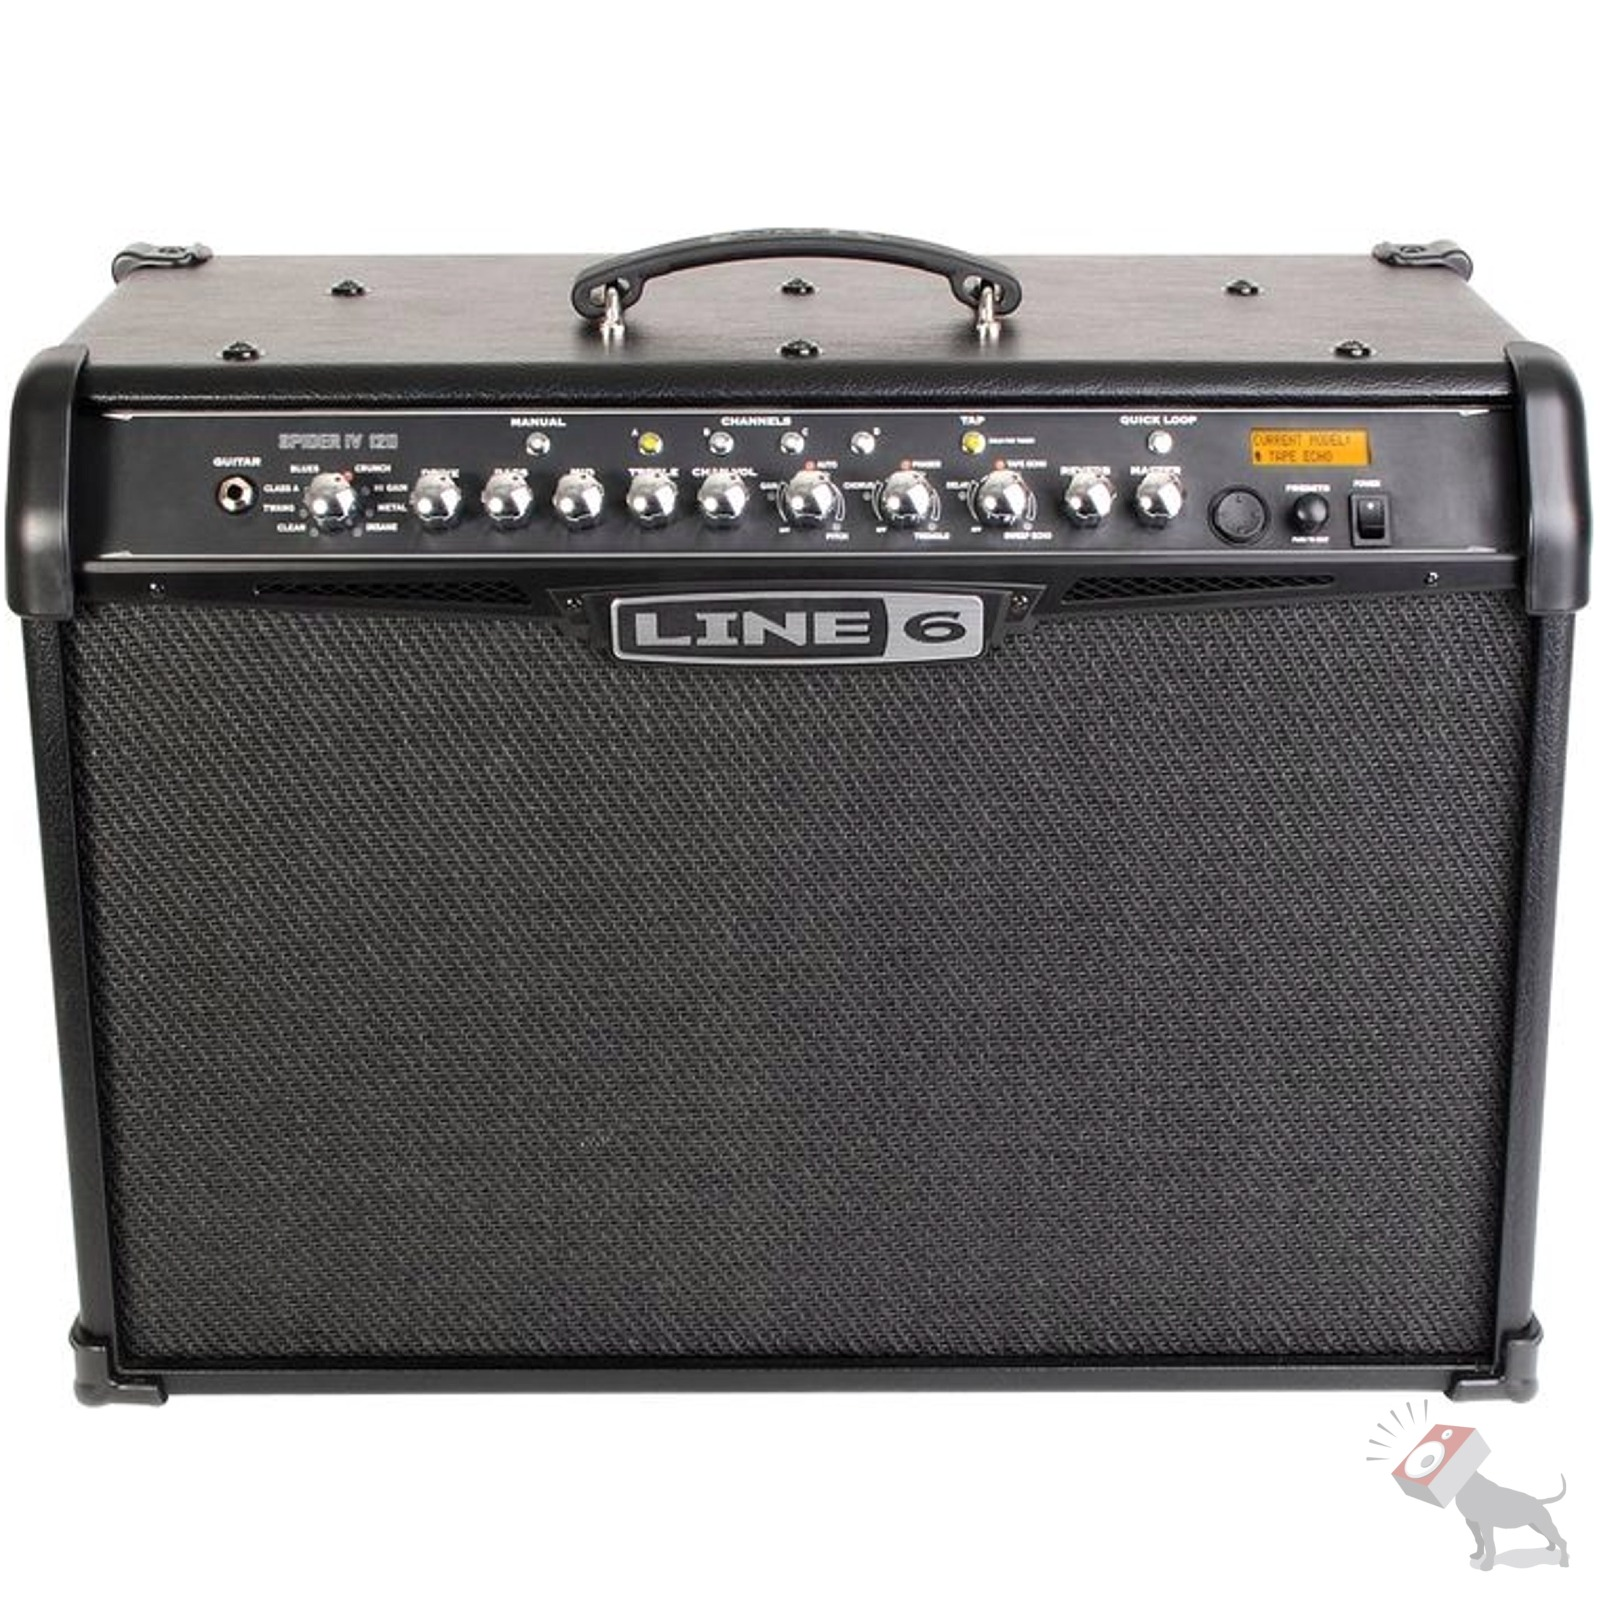 line 6 spider iv 4 amplifier 120 120w 2x10 guitar combo 120 watt amp ebay. Black Bedroom Furniture Sets. Home Design Ideas